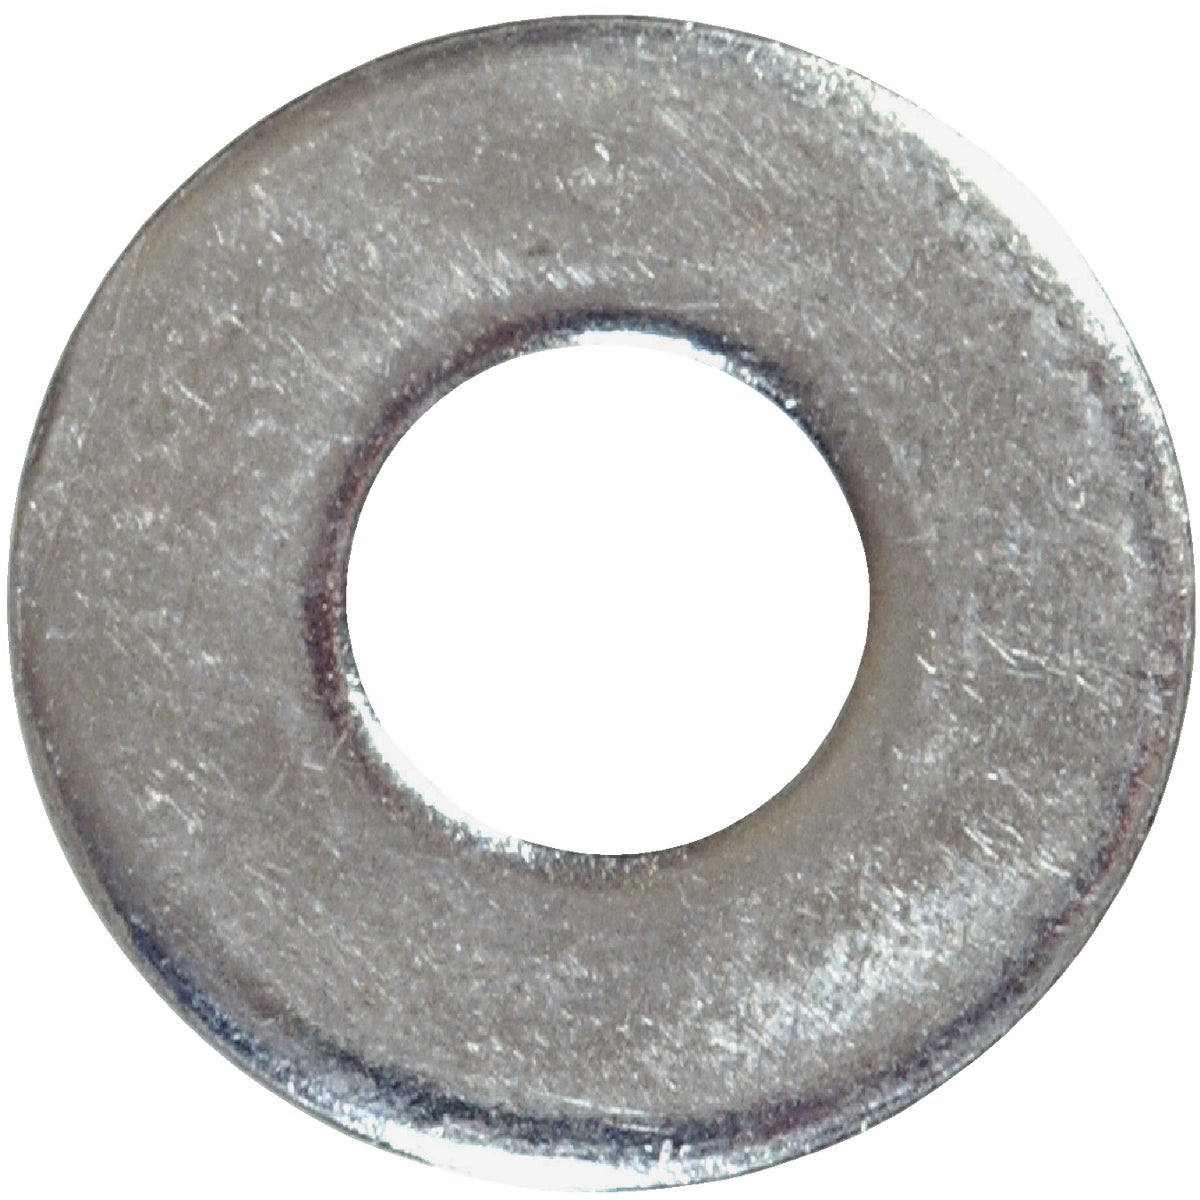 "5LB 5/8"" USS FLT WASHER - 270024 by Hillman Fastener"